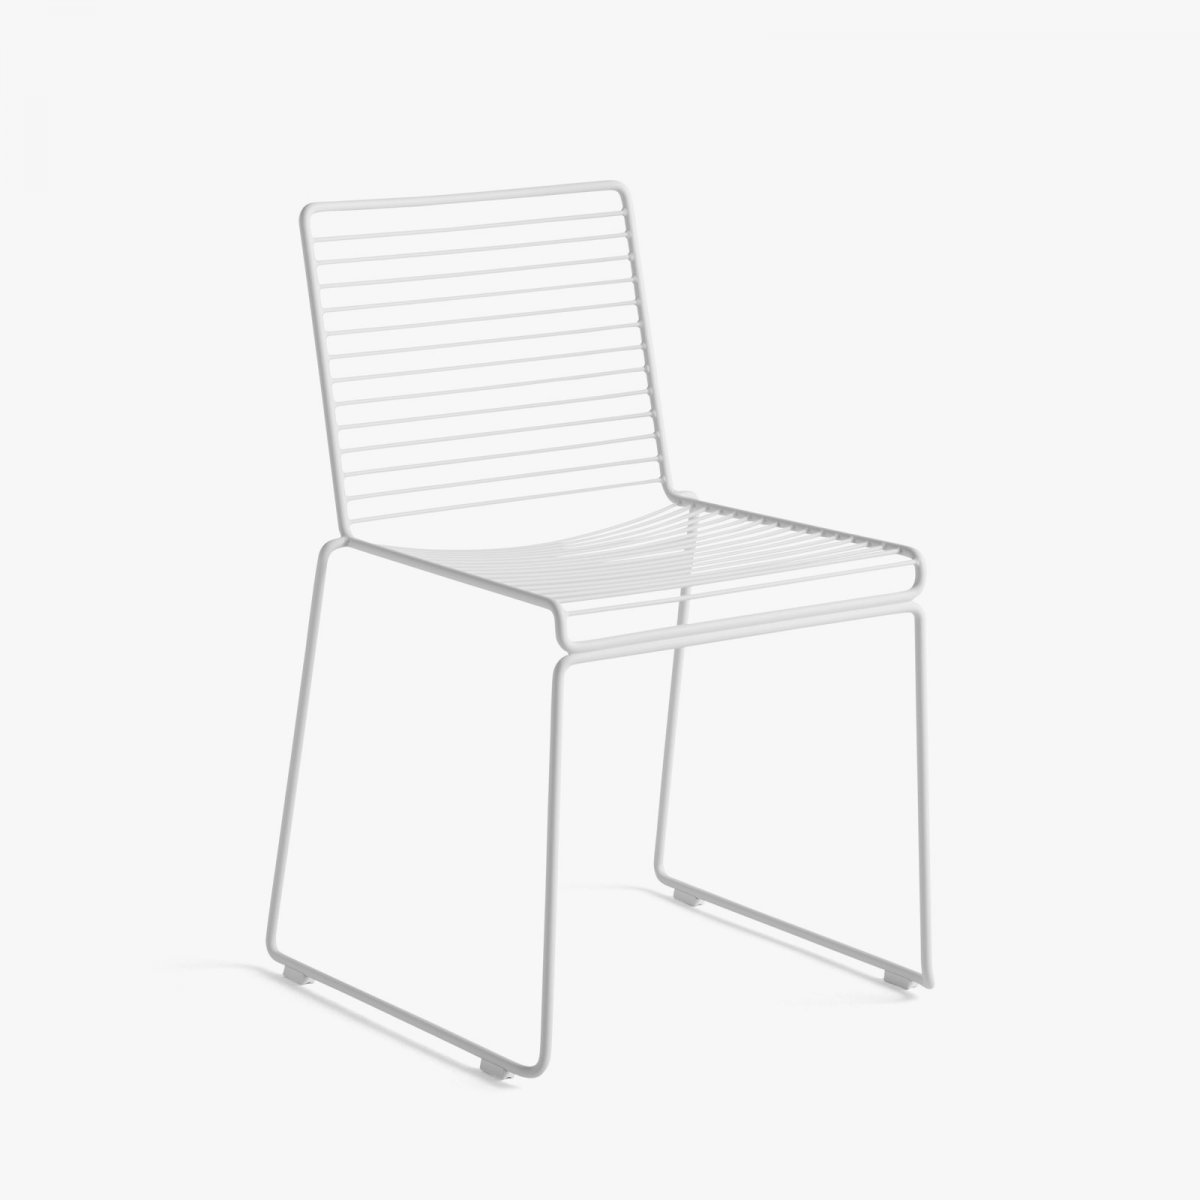 Hee Dining Chair, white.